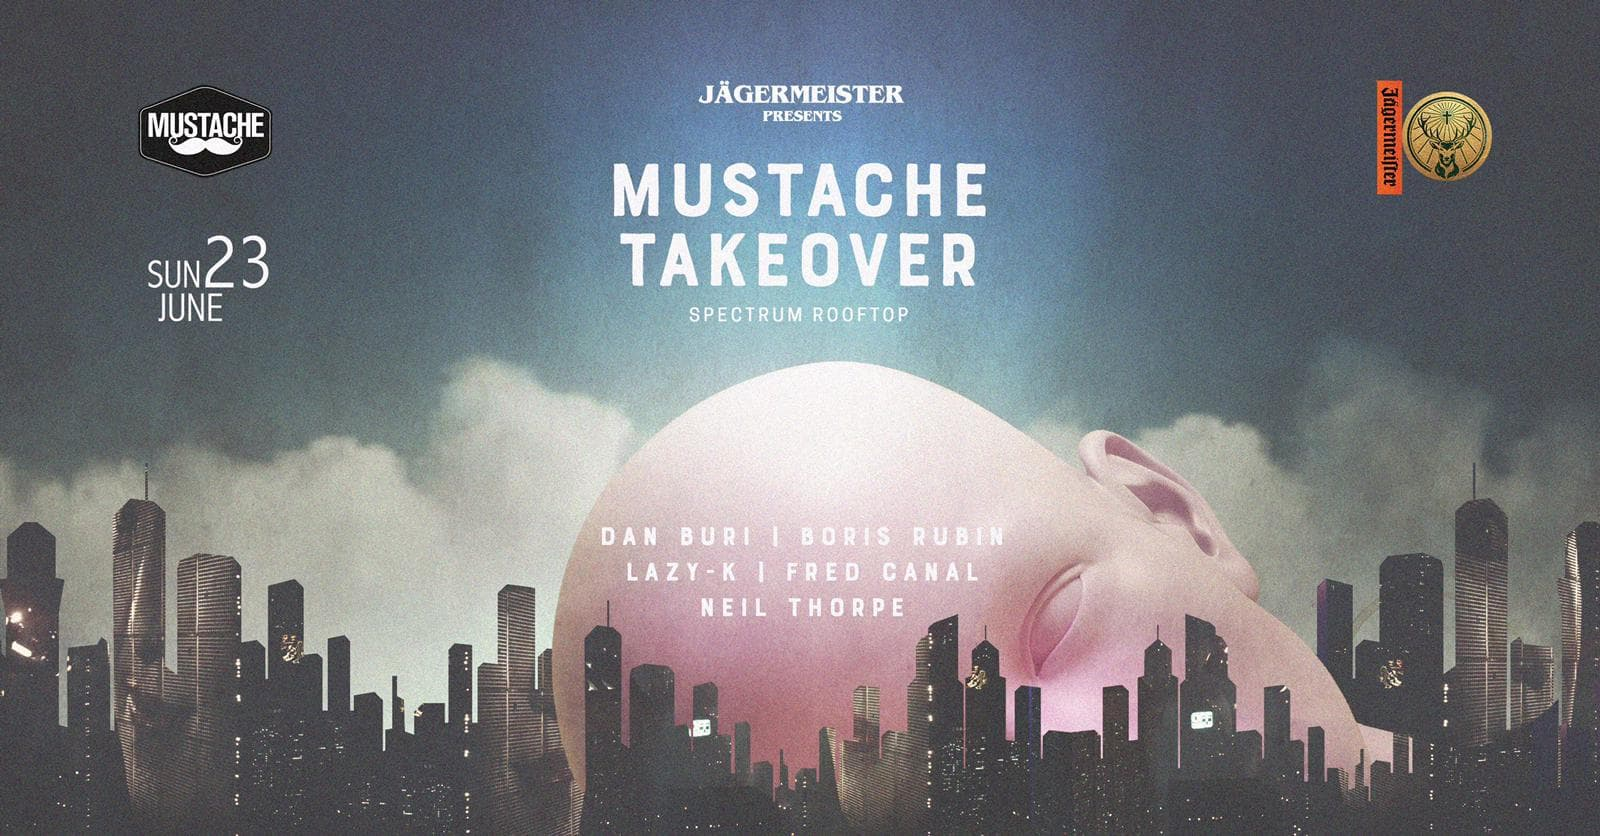 Mustache Takeover at Spectrum. Music event.